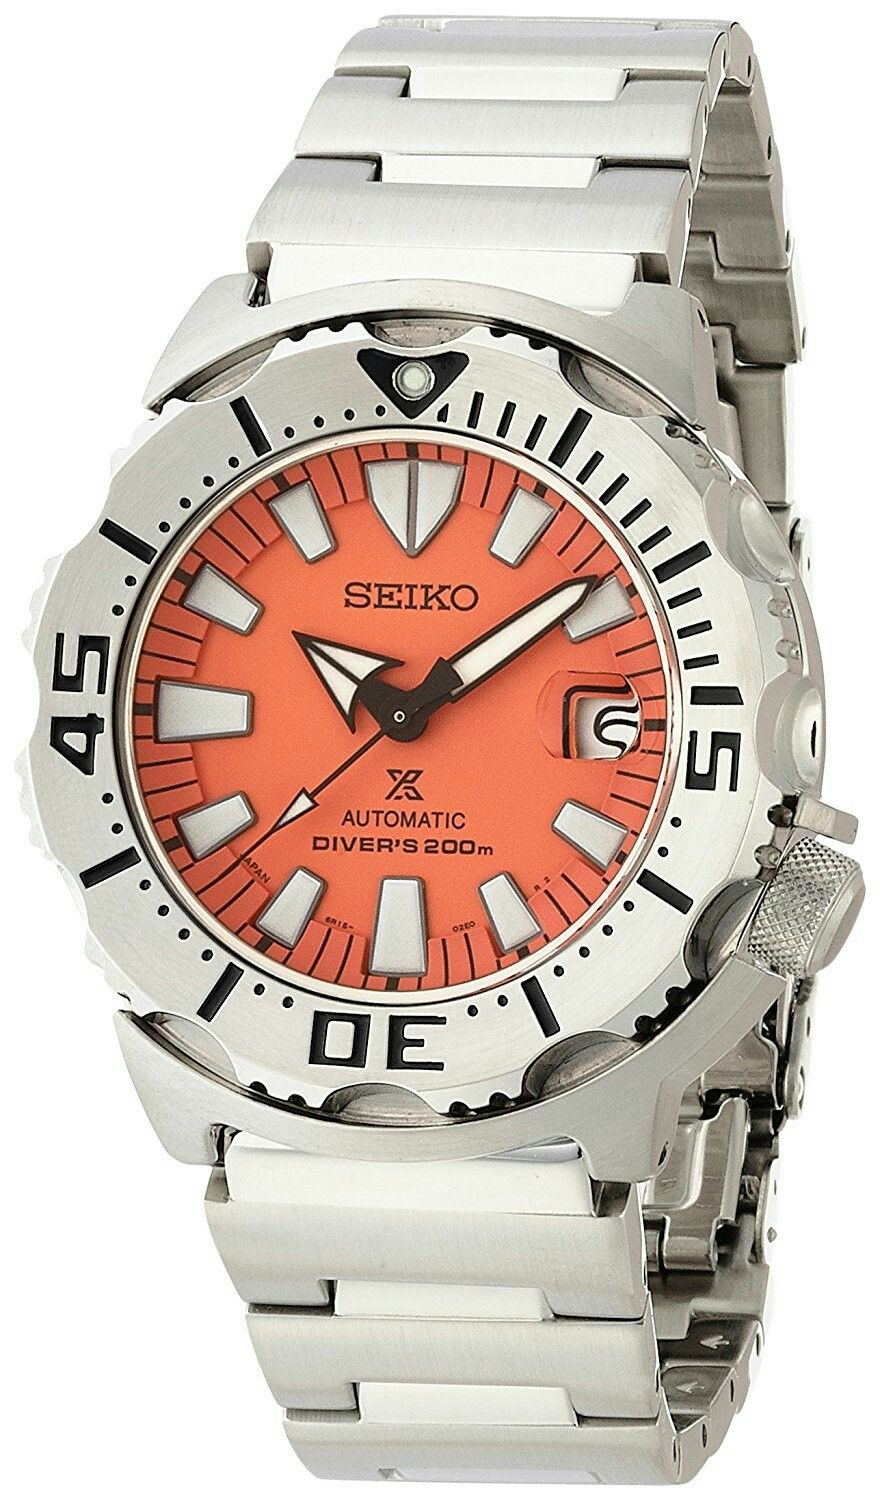 Seiko Prospex Sbdc023 3rd Generation Orange Monster Relogios